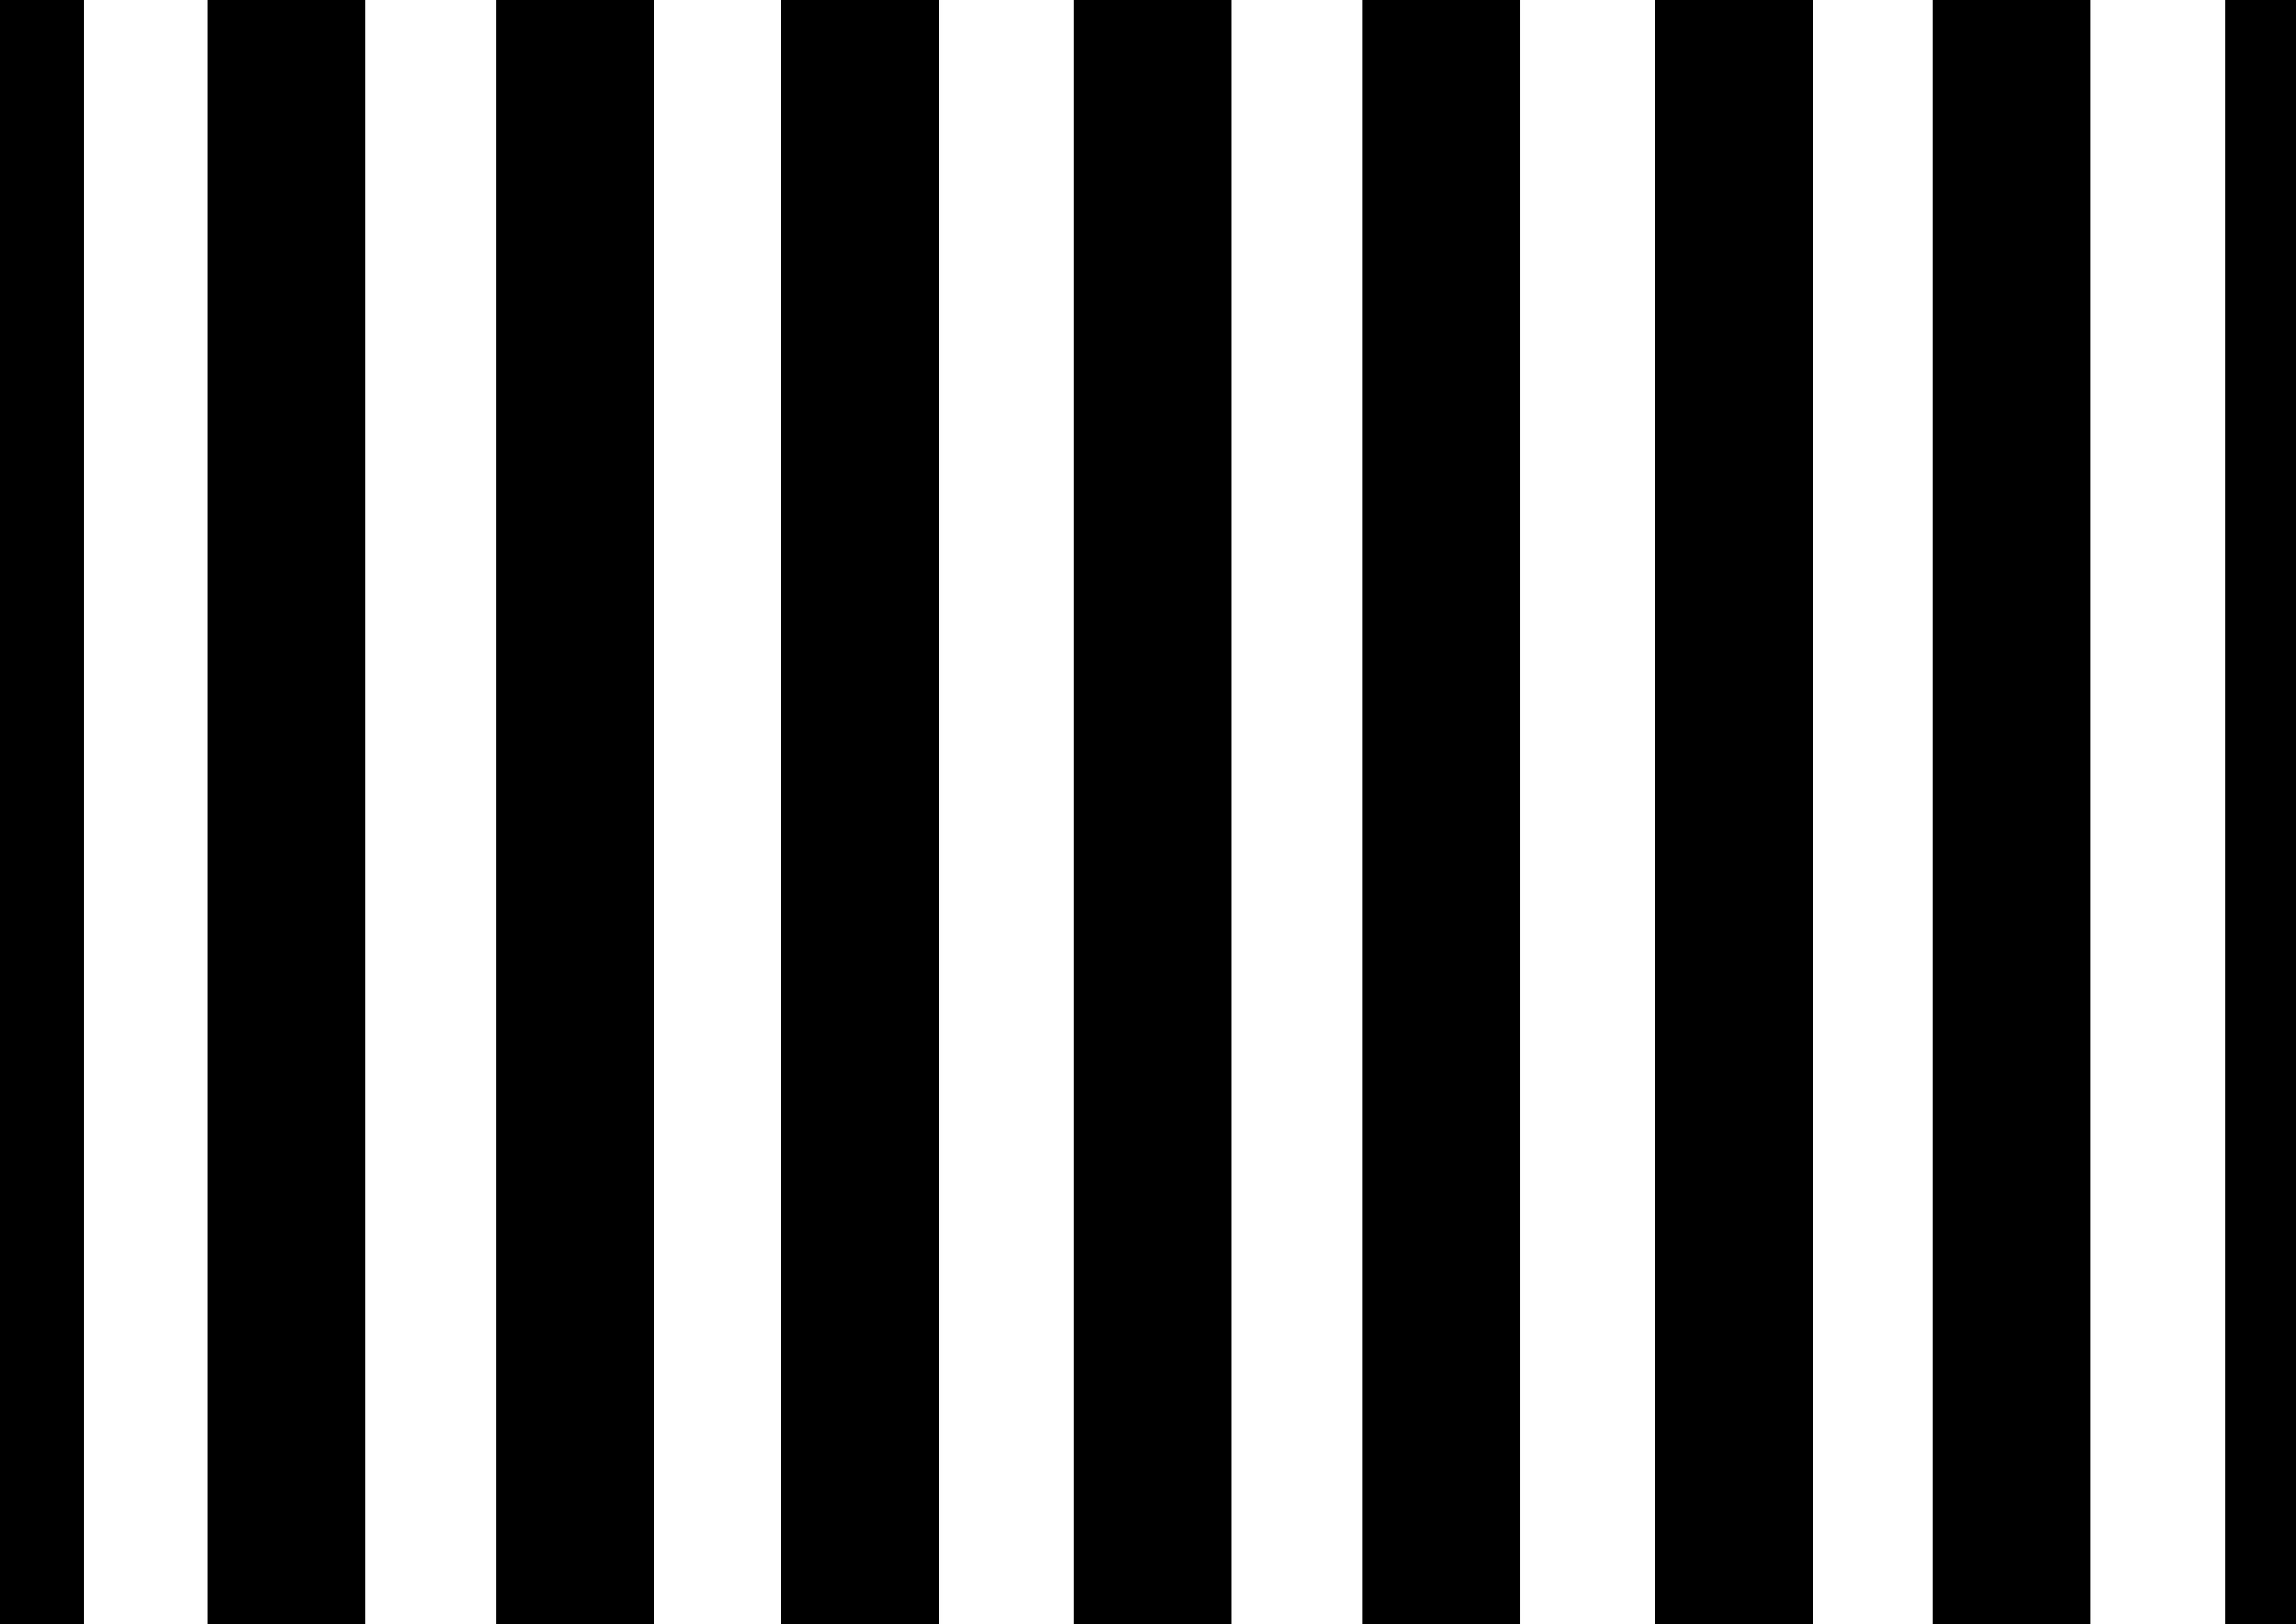 stripes striped background wallpapers anisotropy axis using decorating physics stripe visit decorate trends parallel roses